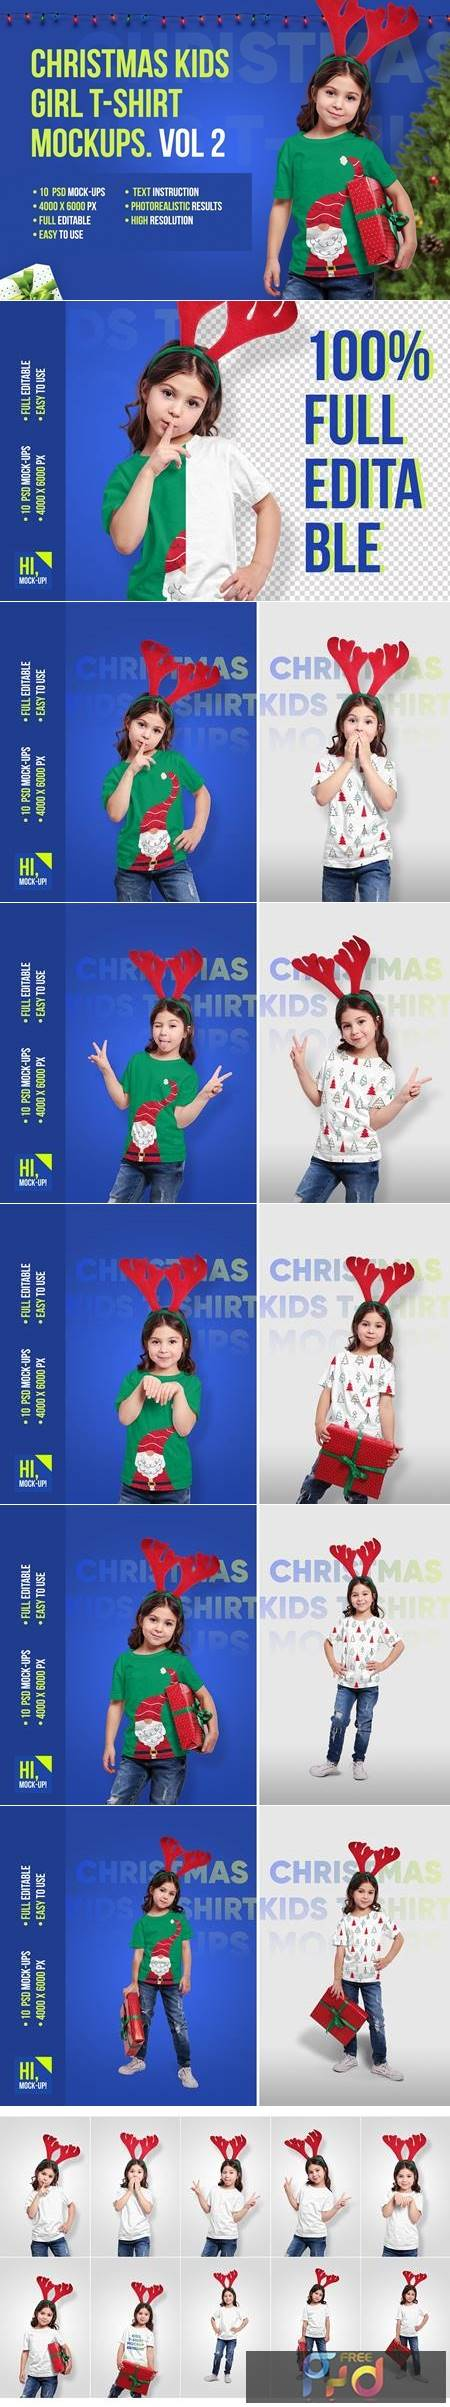 Christmas Kids Girl T-Shirt Mockups 5691730 1